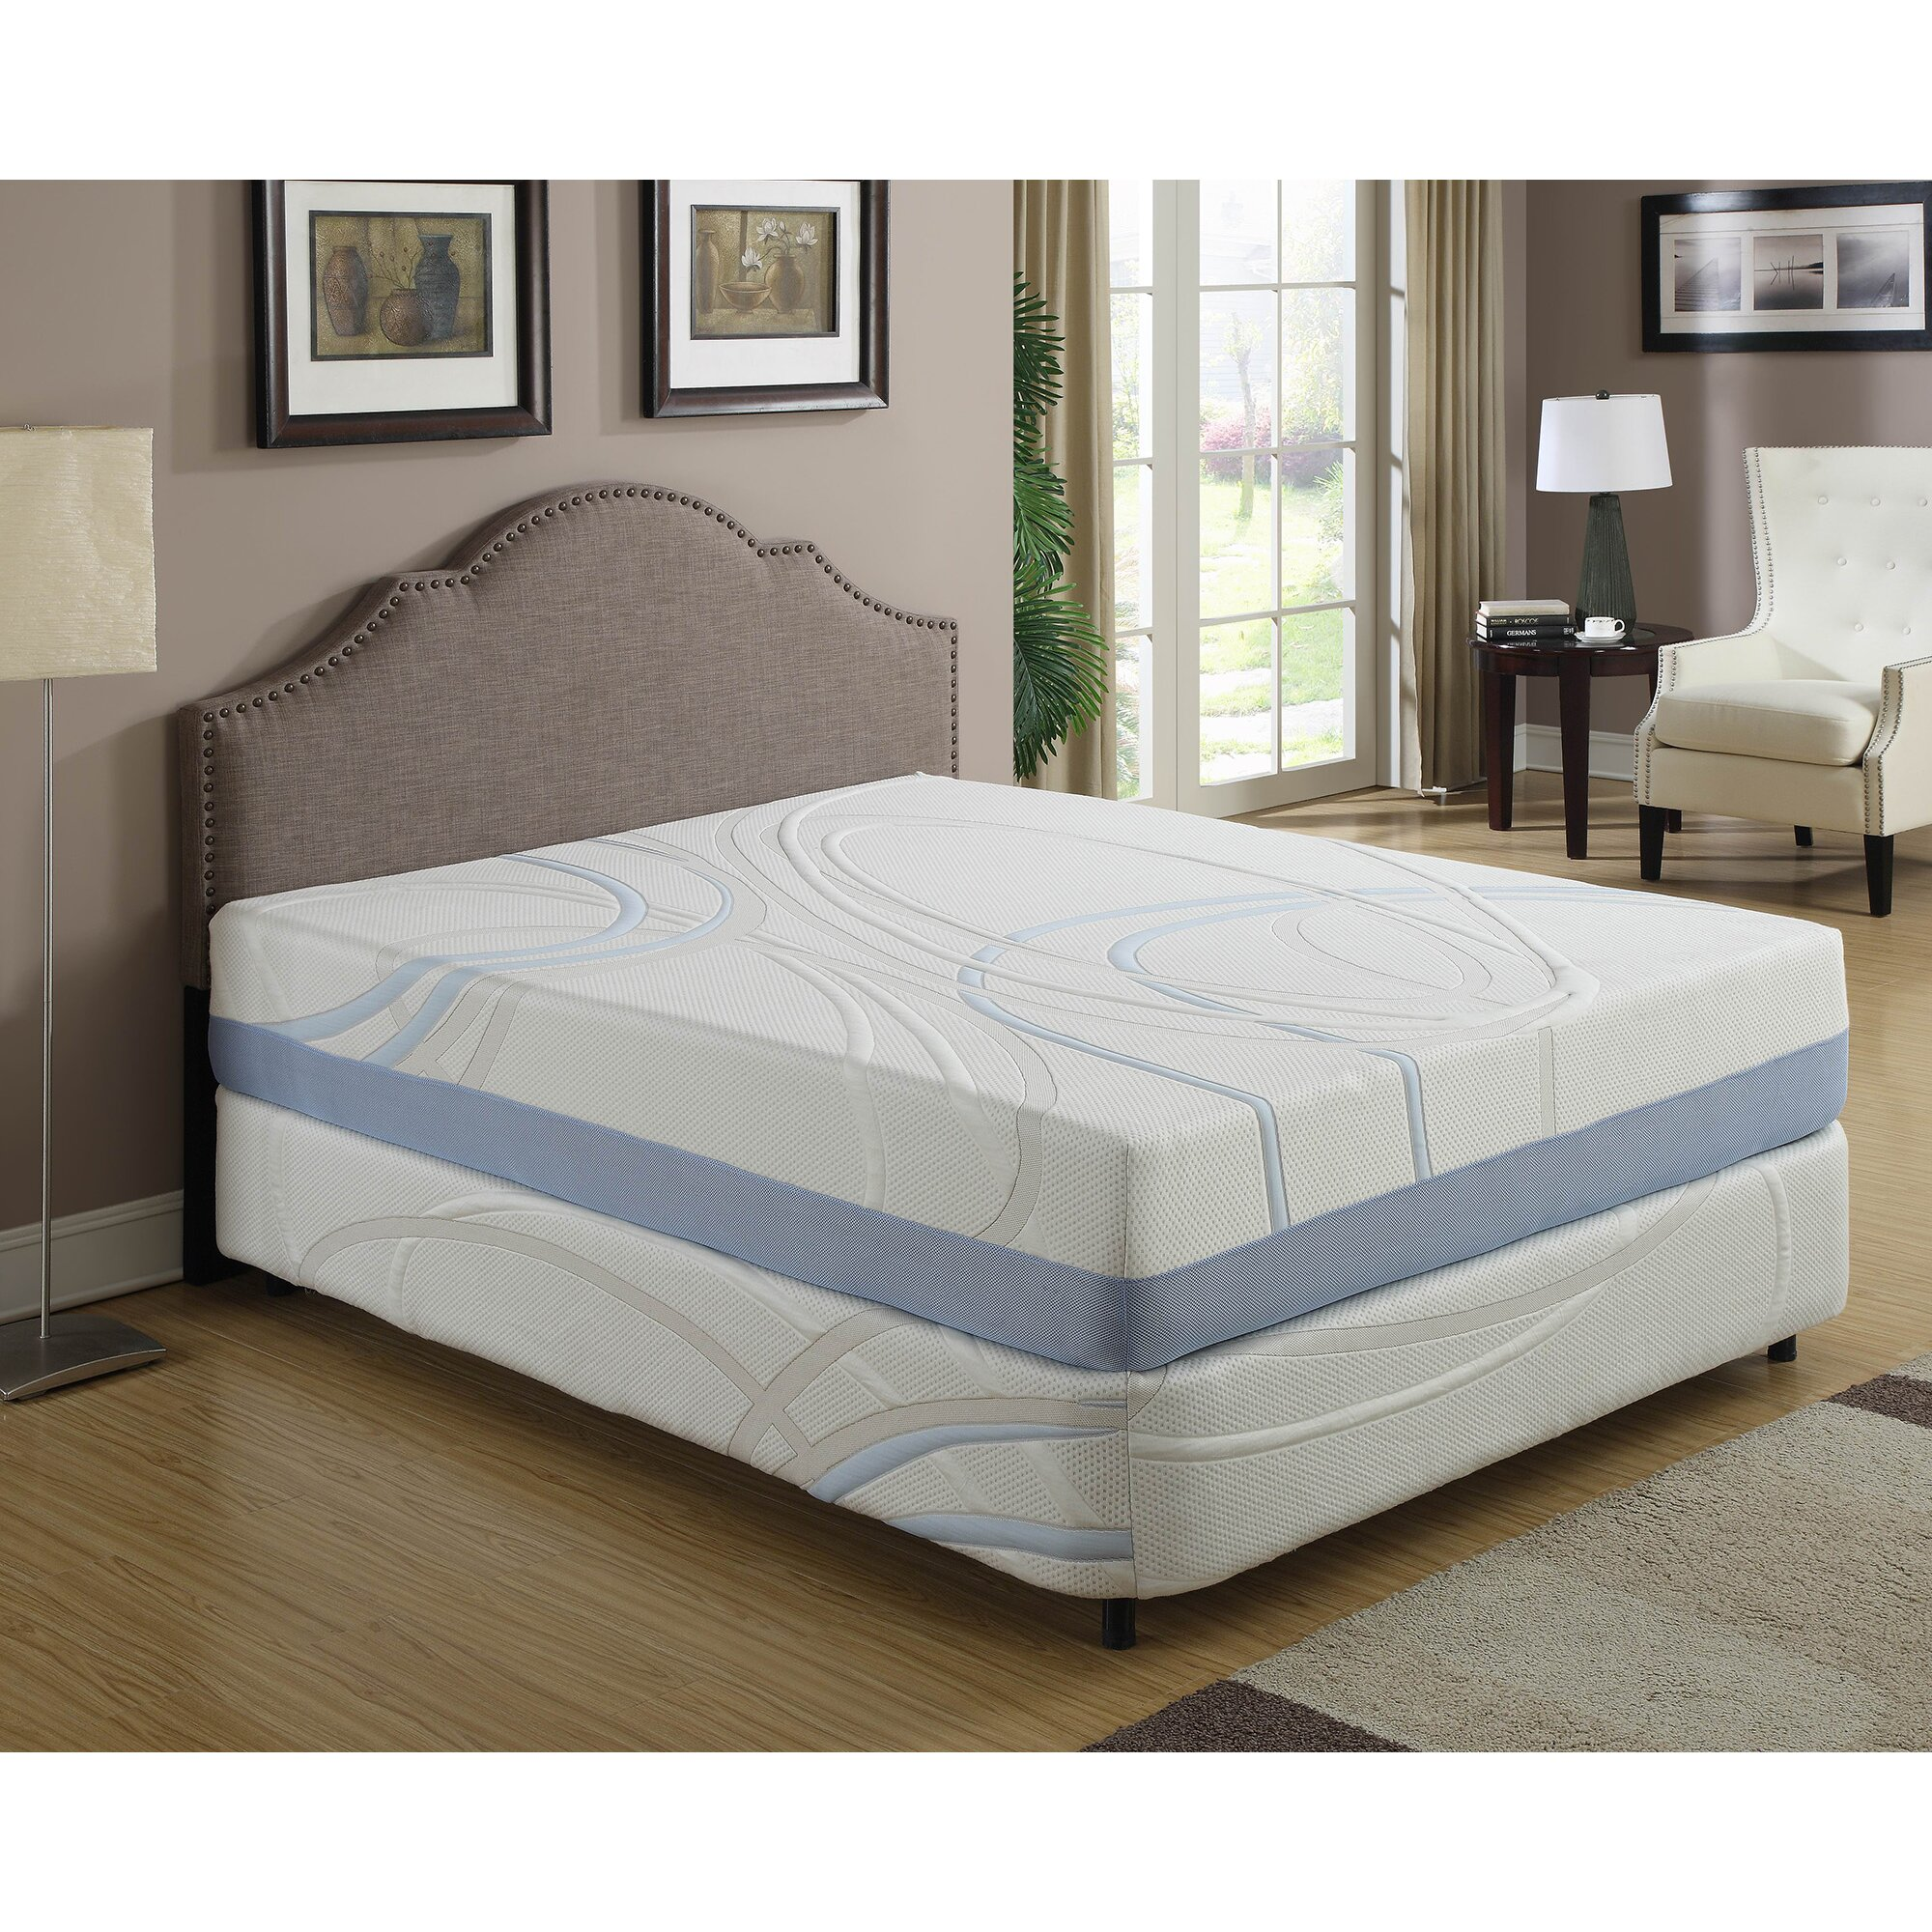 Ac Pacific Charco 12 Firm Memory Foam Mattress Reviews